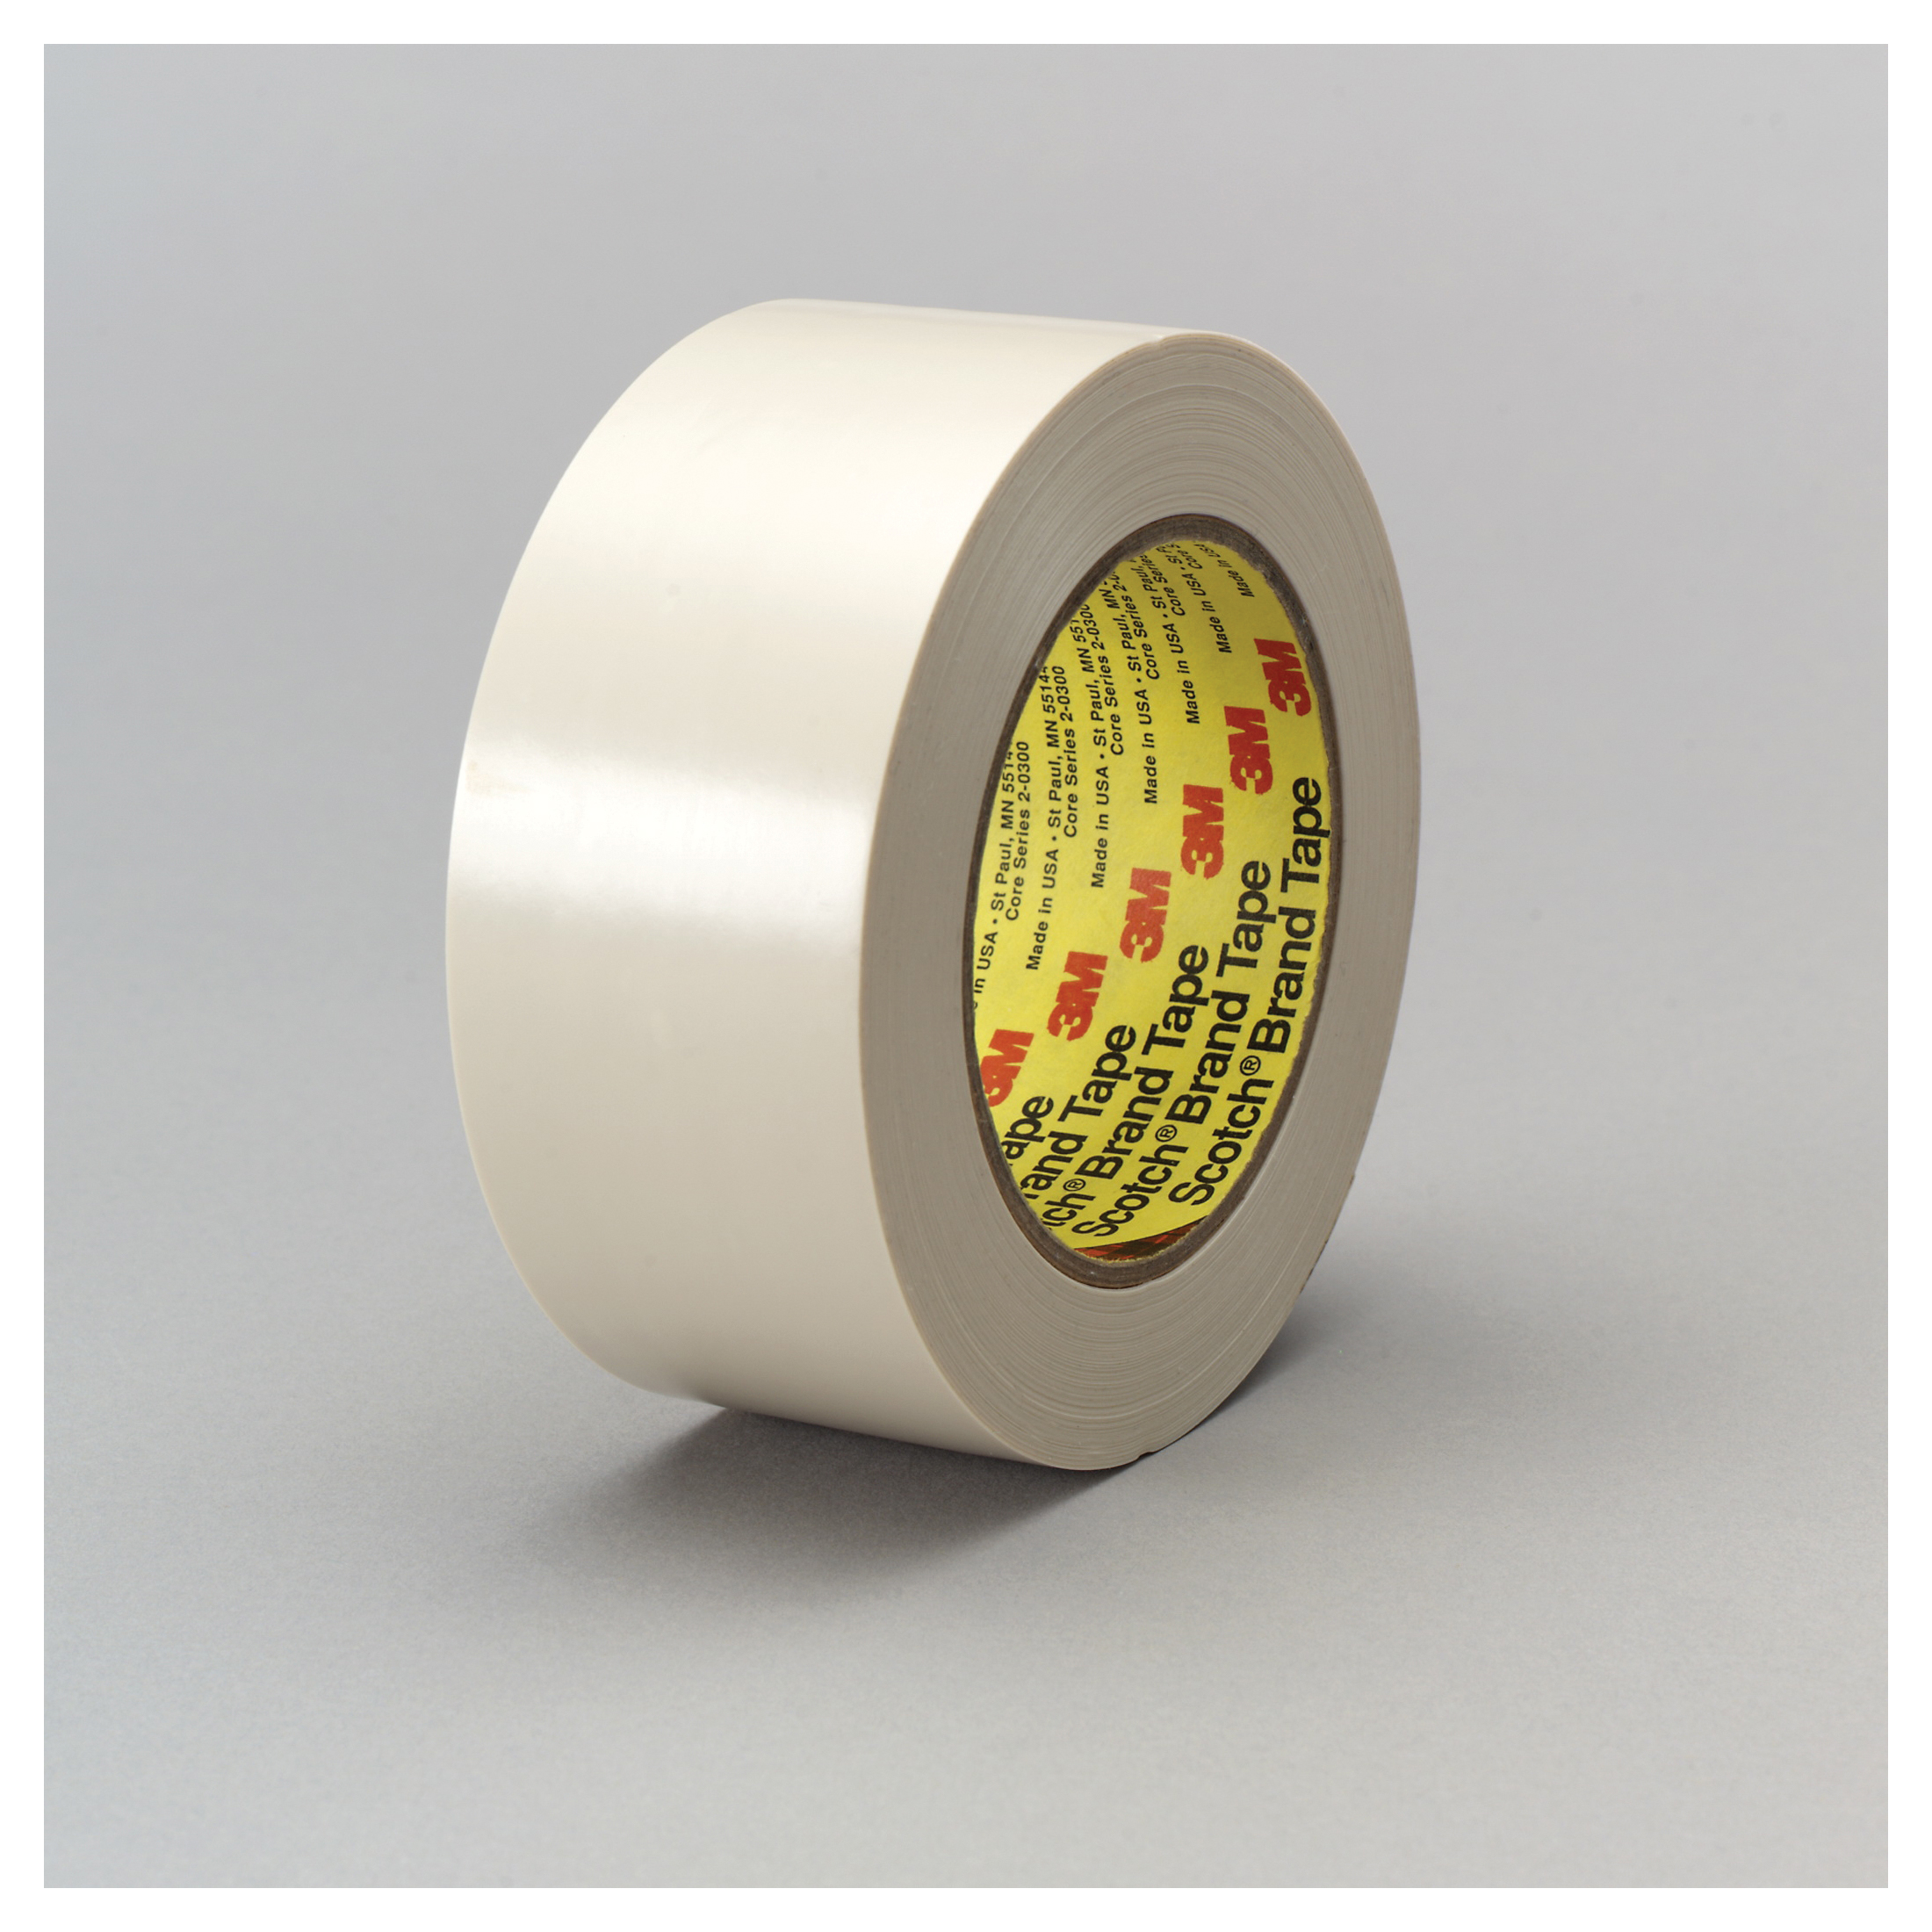 3M™ 021200-05852 Electroplating Tape, 36 yd L x 3/4 in W, 7.1 mil THK, Rubber Adhesive, Vinyl Backing